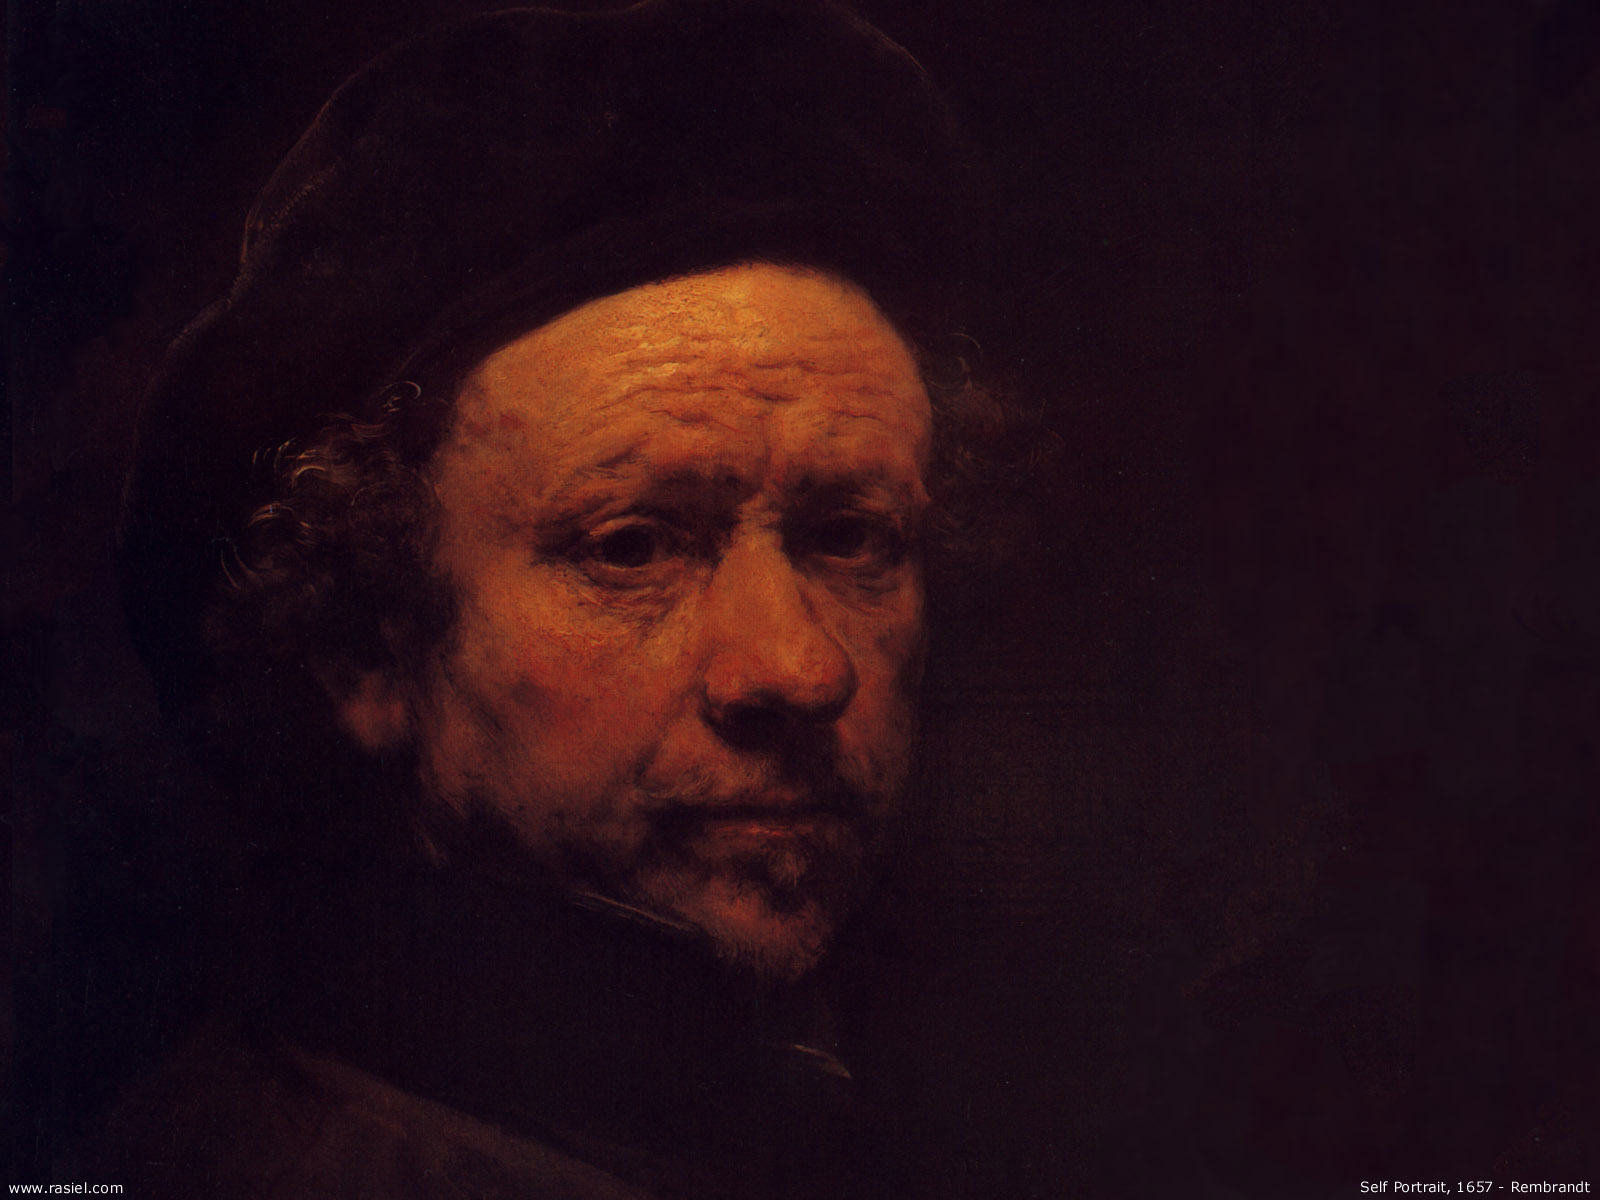 File:Rembrandt - Self Portrait111.jpg